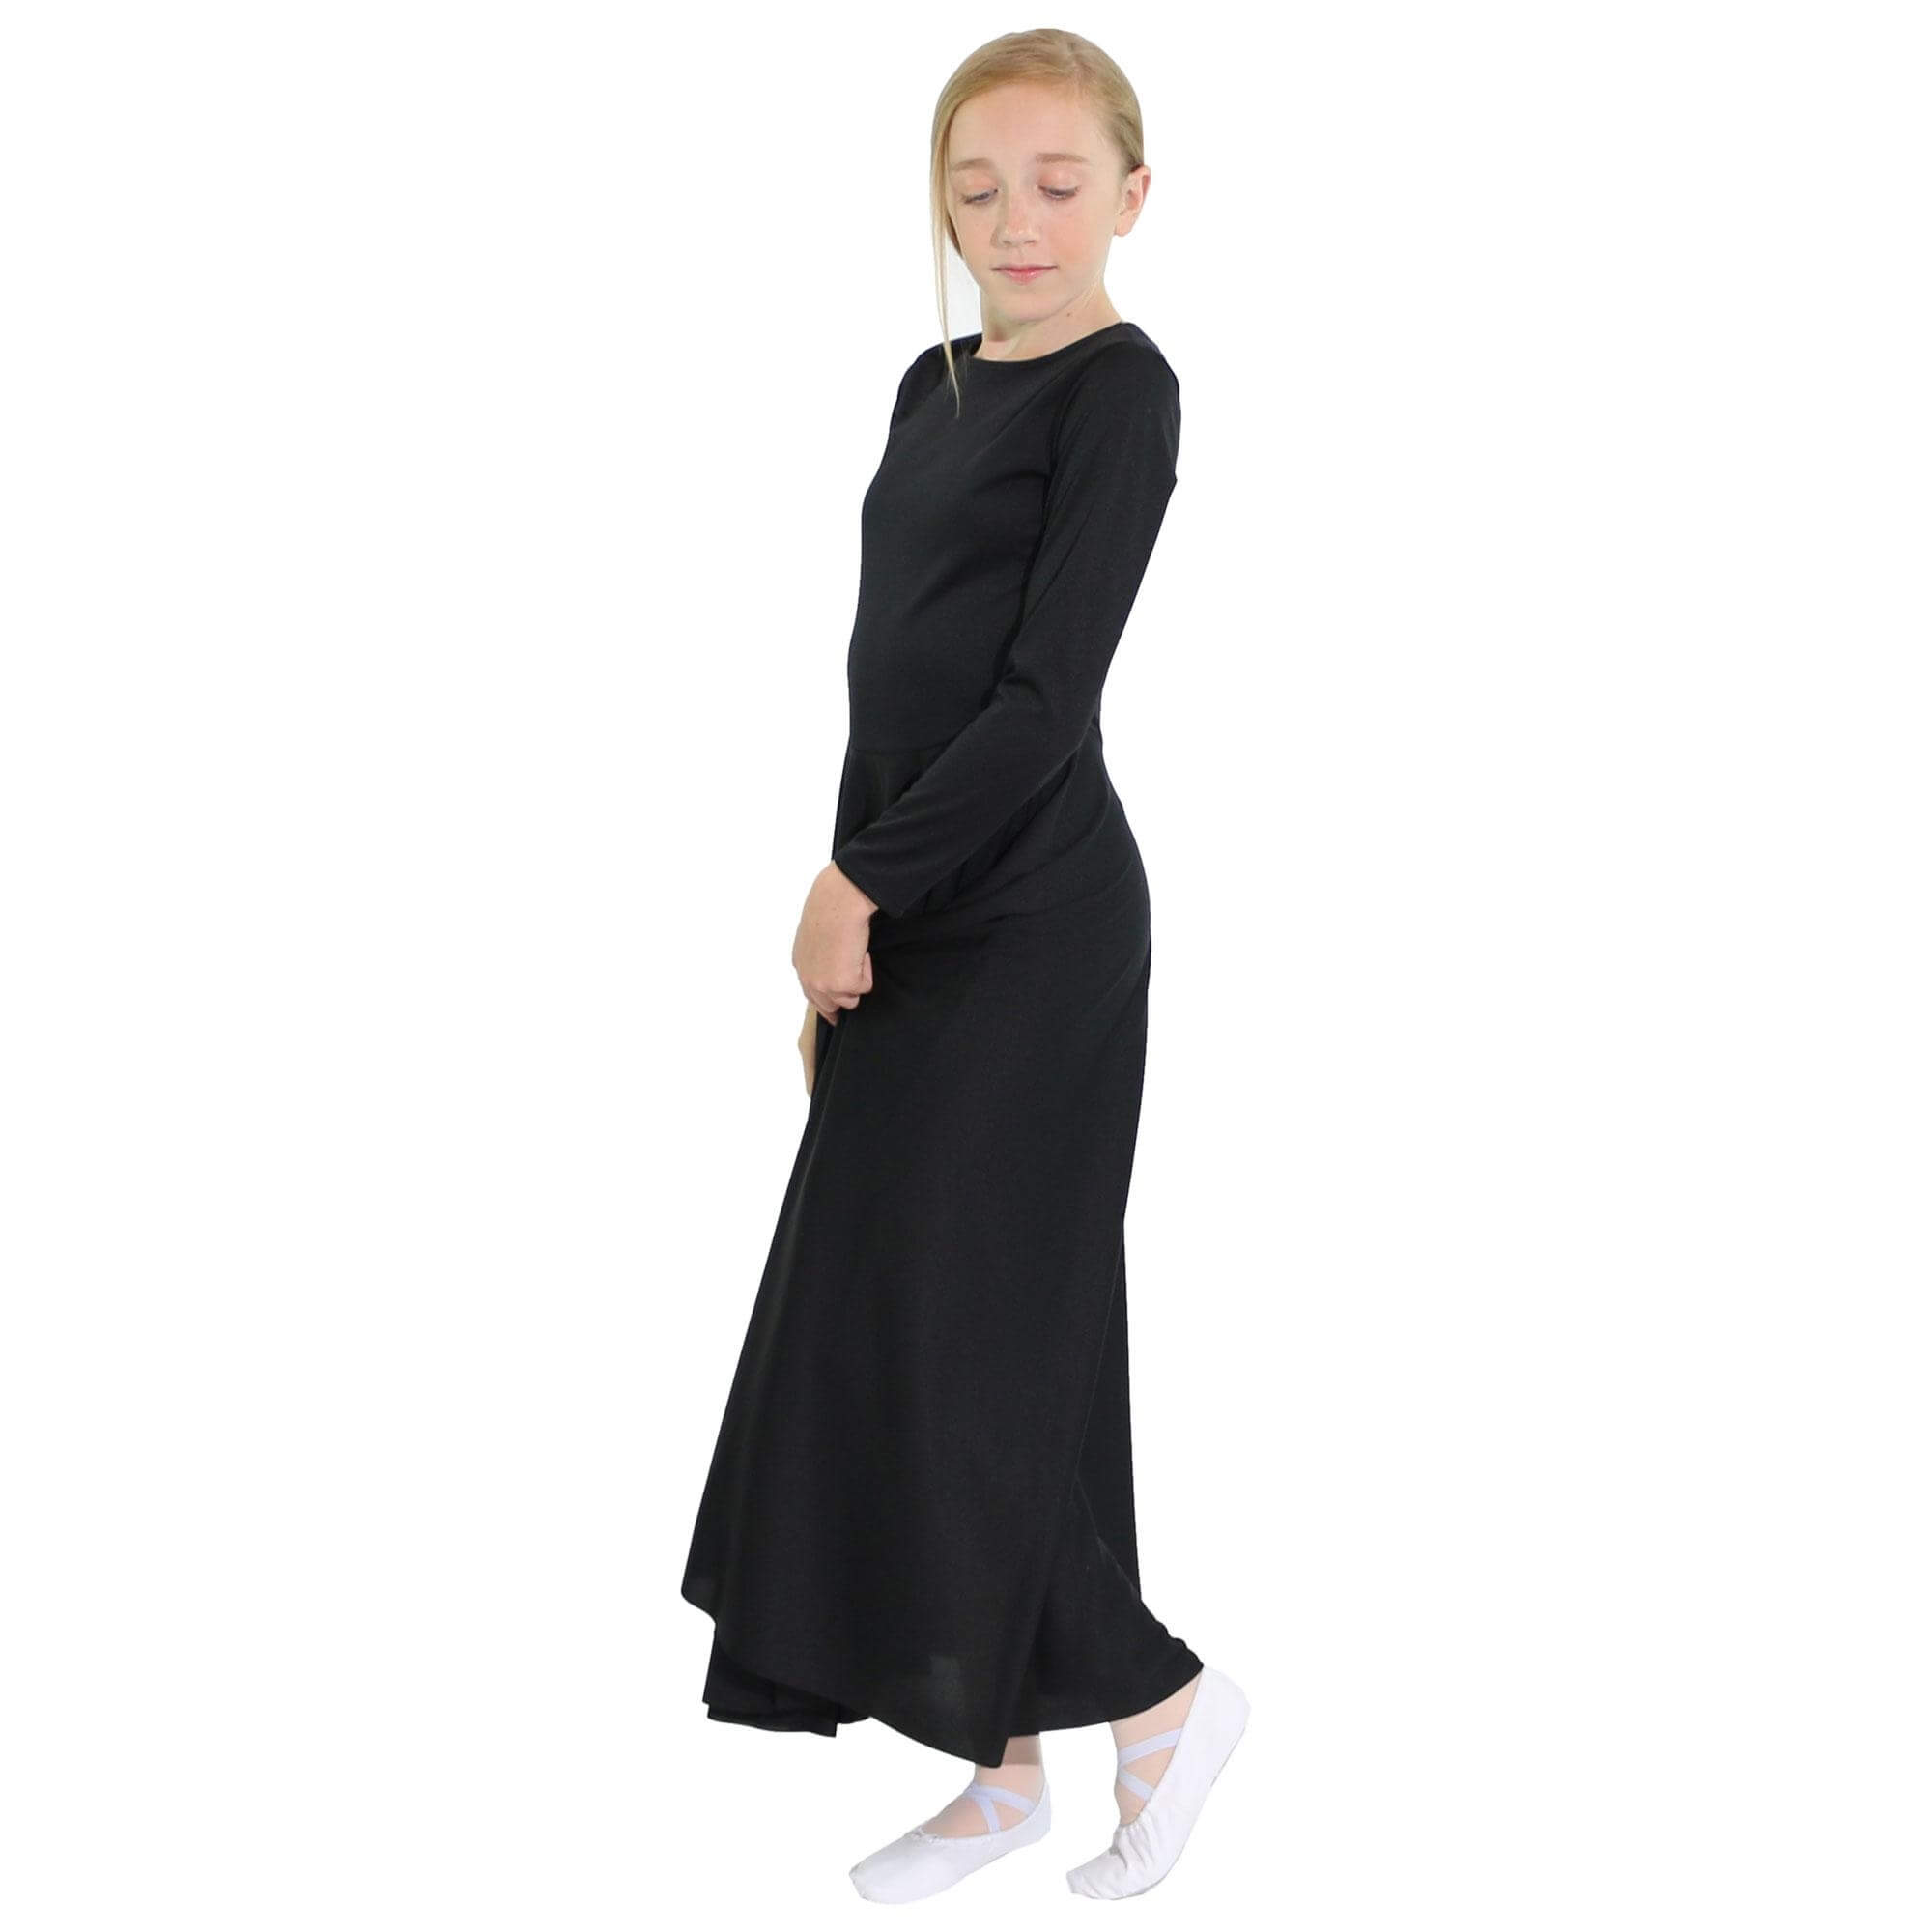 Danzcue Praise Full Length Long Sleeve Child Dance Dress - Click Image to Close